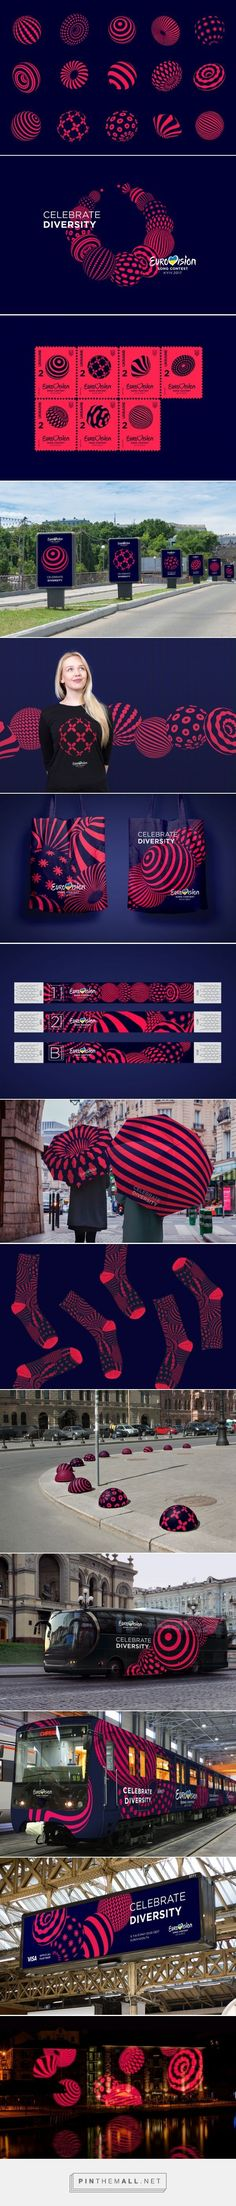 Brand New: New Logo and Identity for Eurovision Song Contest 2017 by banda.agency and Republique... - a grouped images picture - Pin Them All. If you're a user experience professional, listen to The UX Blog Podcast on iTunes.. If you're a user experience professional, listen to The UX Blog Podcast on iTunes.